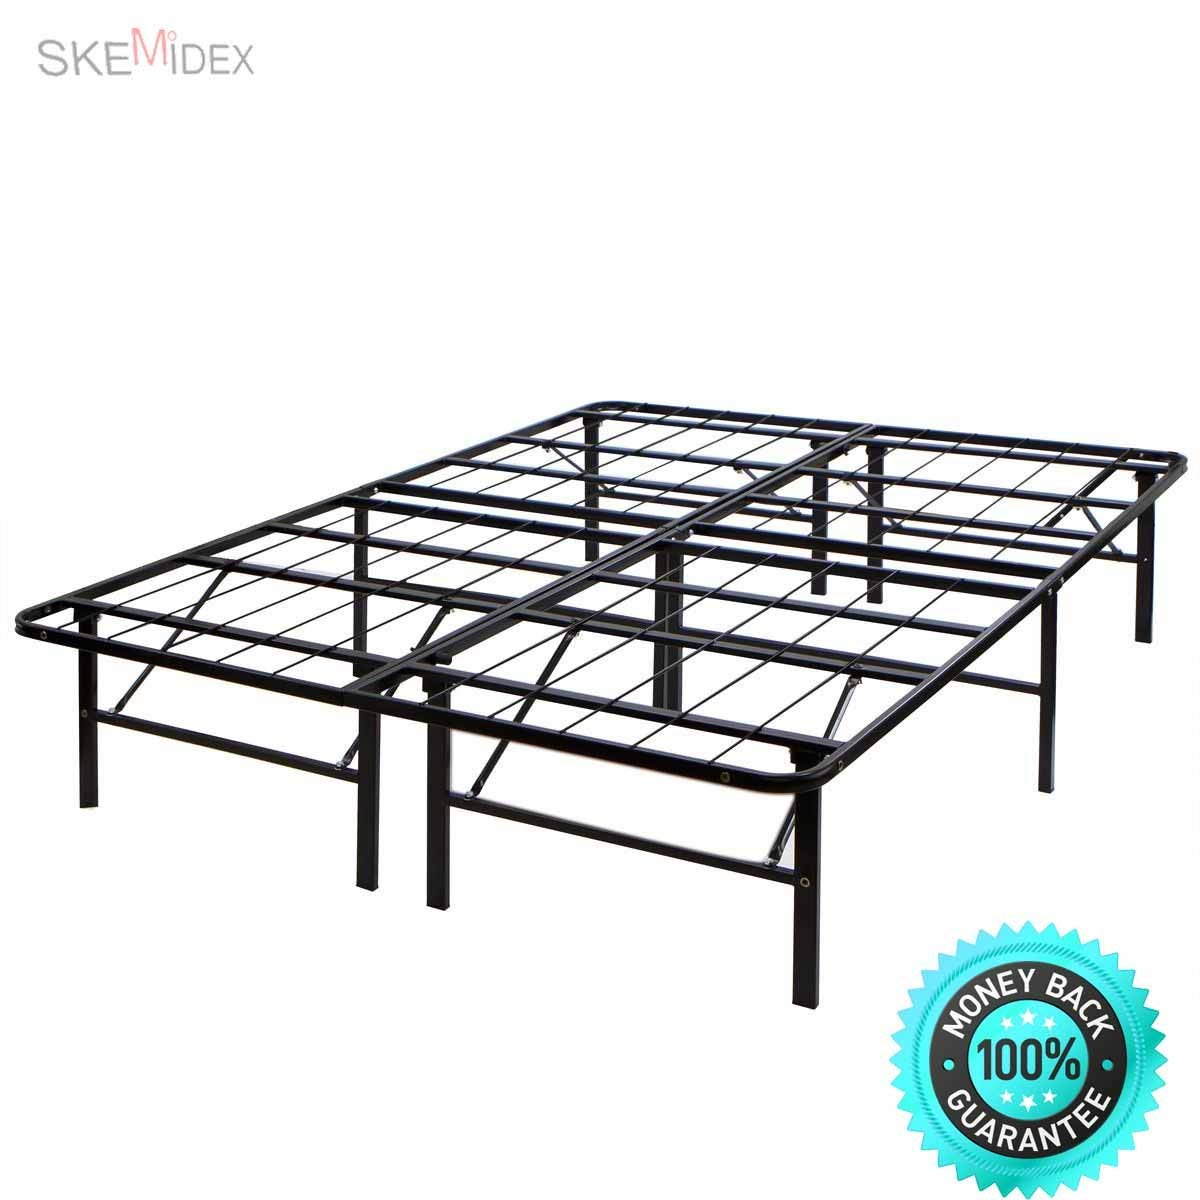 SKEMiDEX---Modern king Size Bi-Fold Folding Platform Metal Bed Frame Mattress Foundation Once builtnyou simply place the mattress on top and you are ready to sleep Eliminates the need for a tradition.